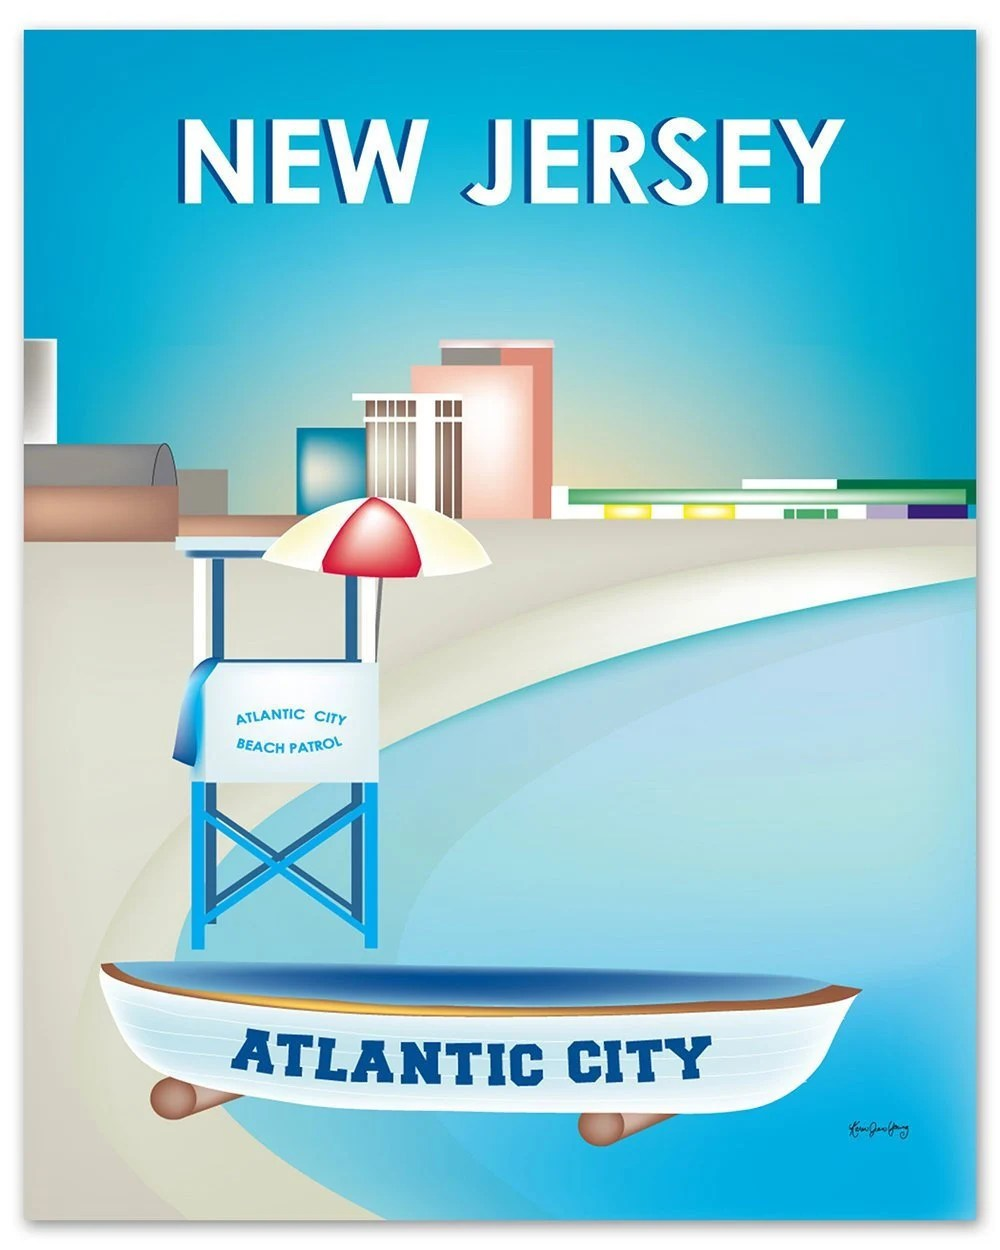 Atlantic Keuken Atlantic City Nj Artwork New Jersey Print Atlantic City Print New Jersey Wall Art New Jersey Boardwalk Nj Beach Art Style E8 O Newj